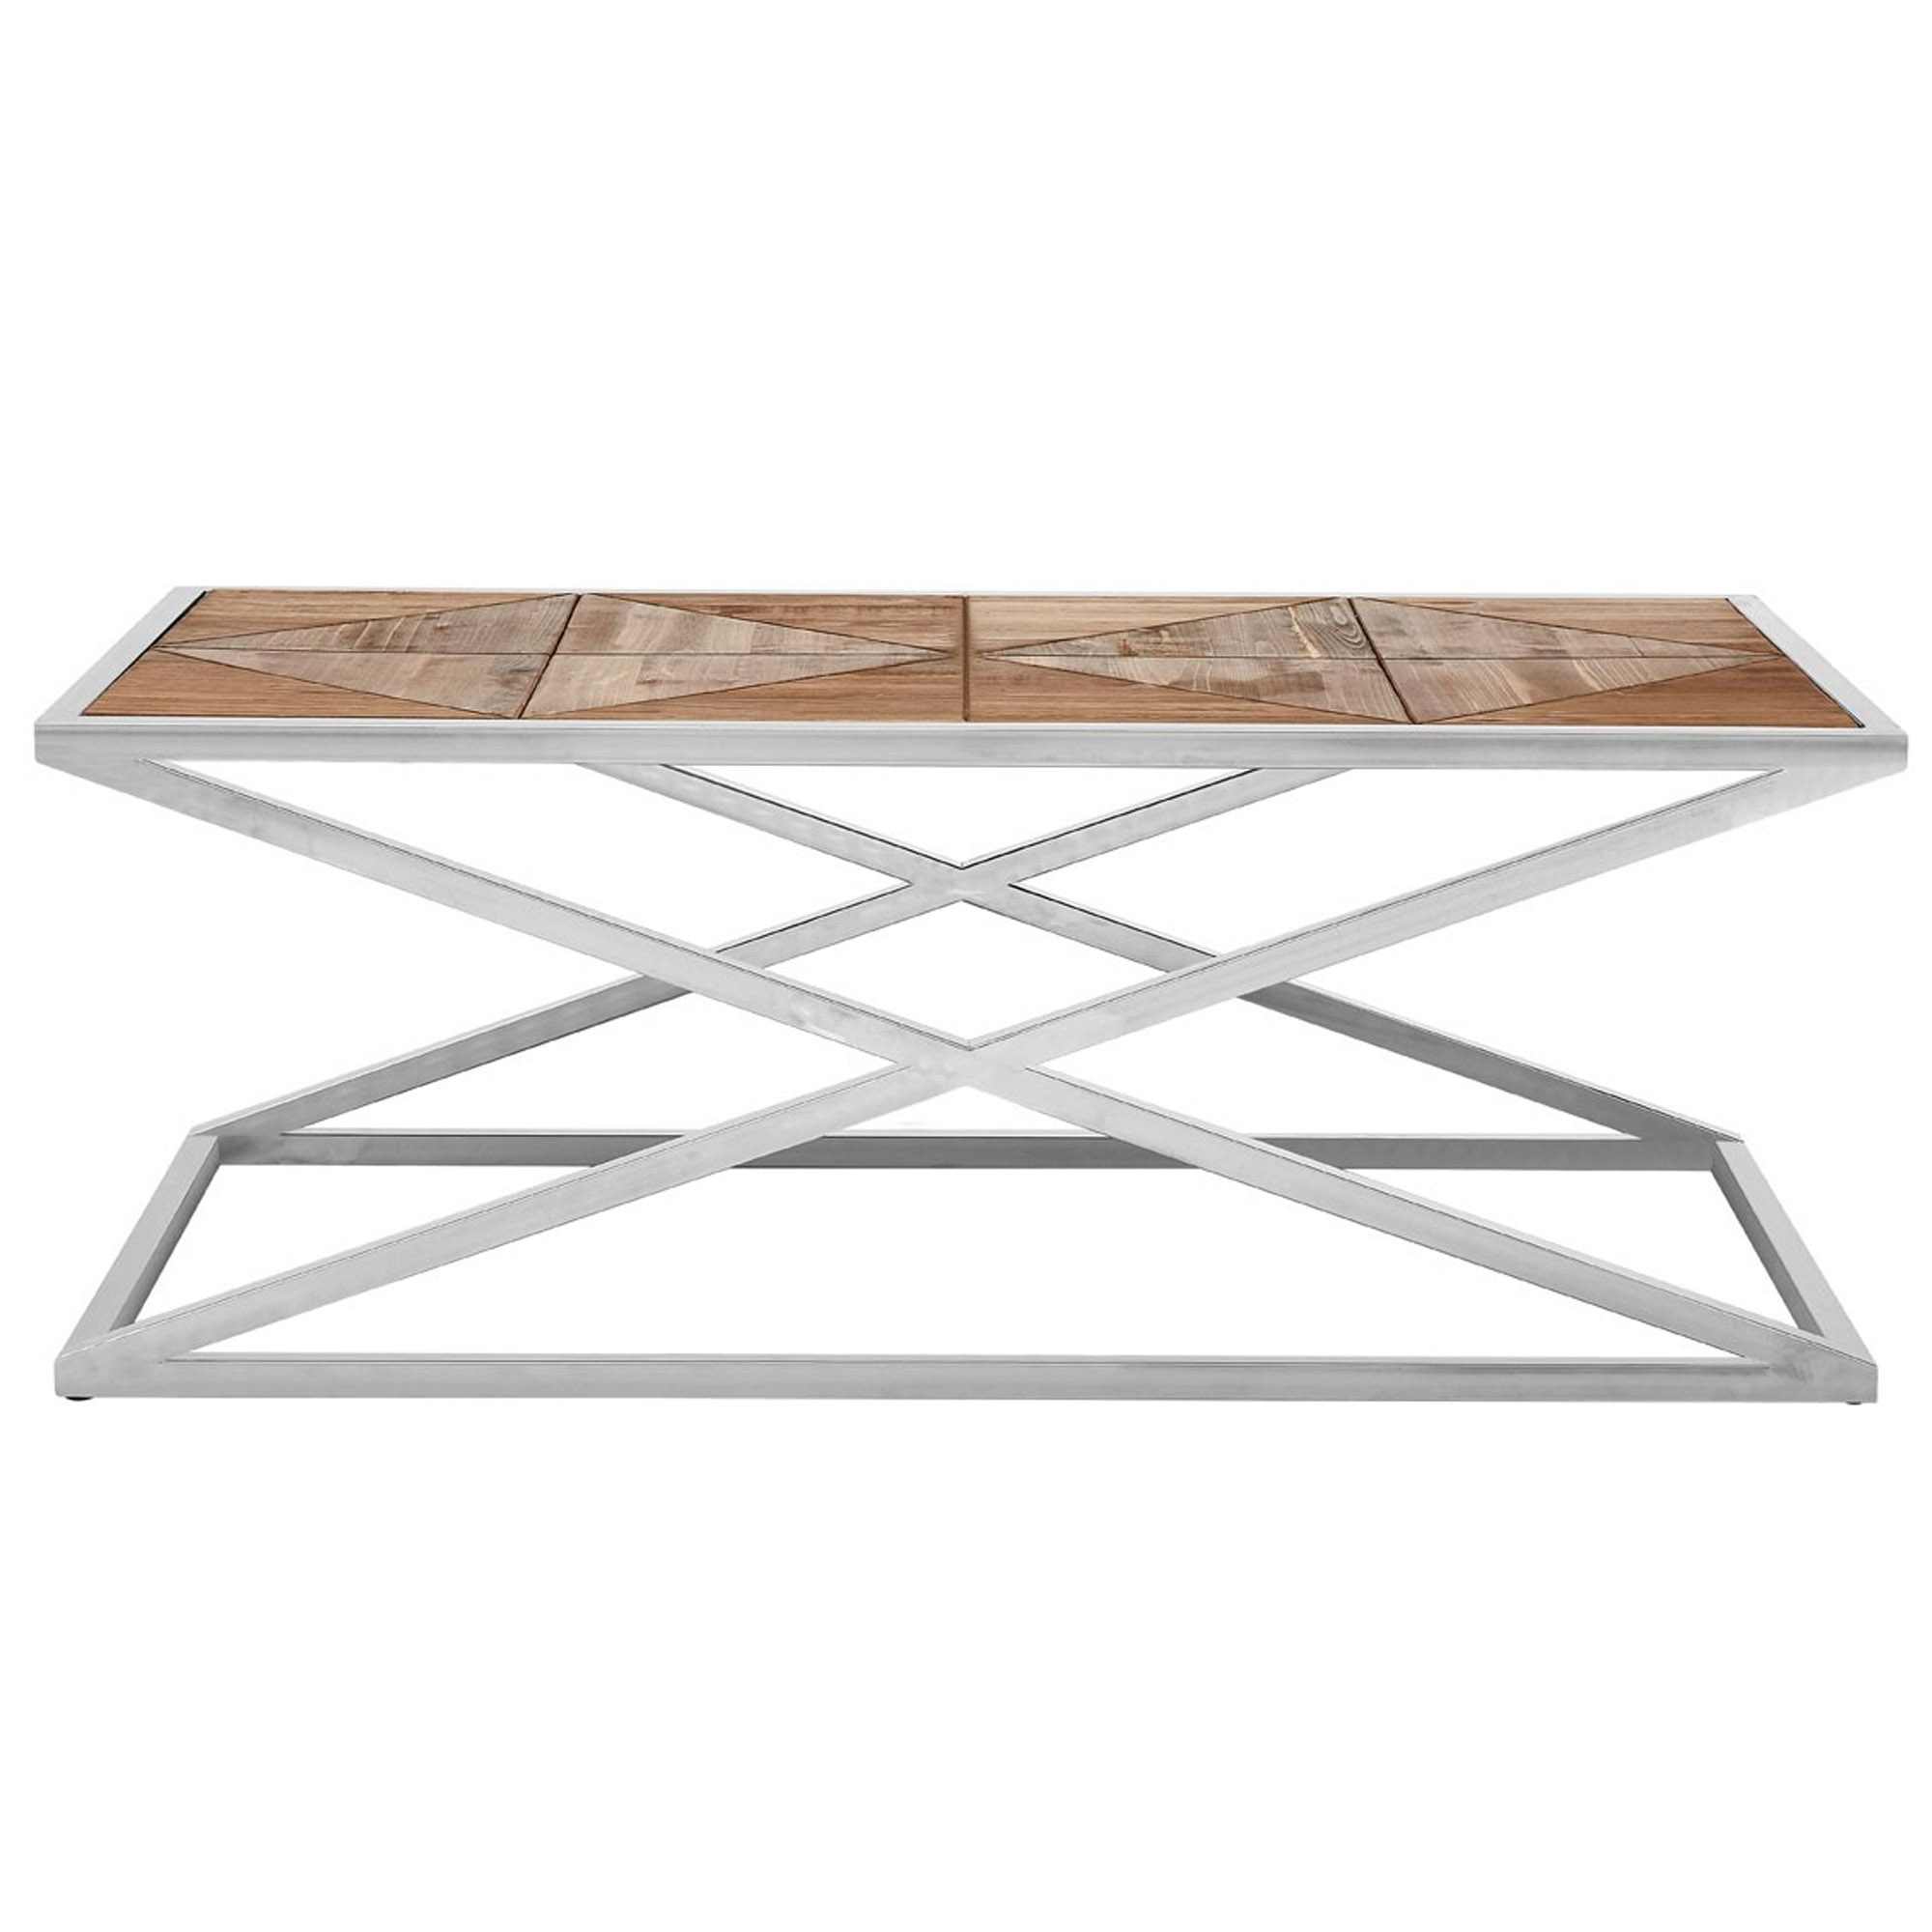 Hudson Coffee Table: Modern & Contemporary Furniture